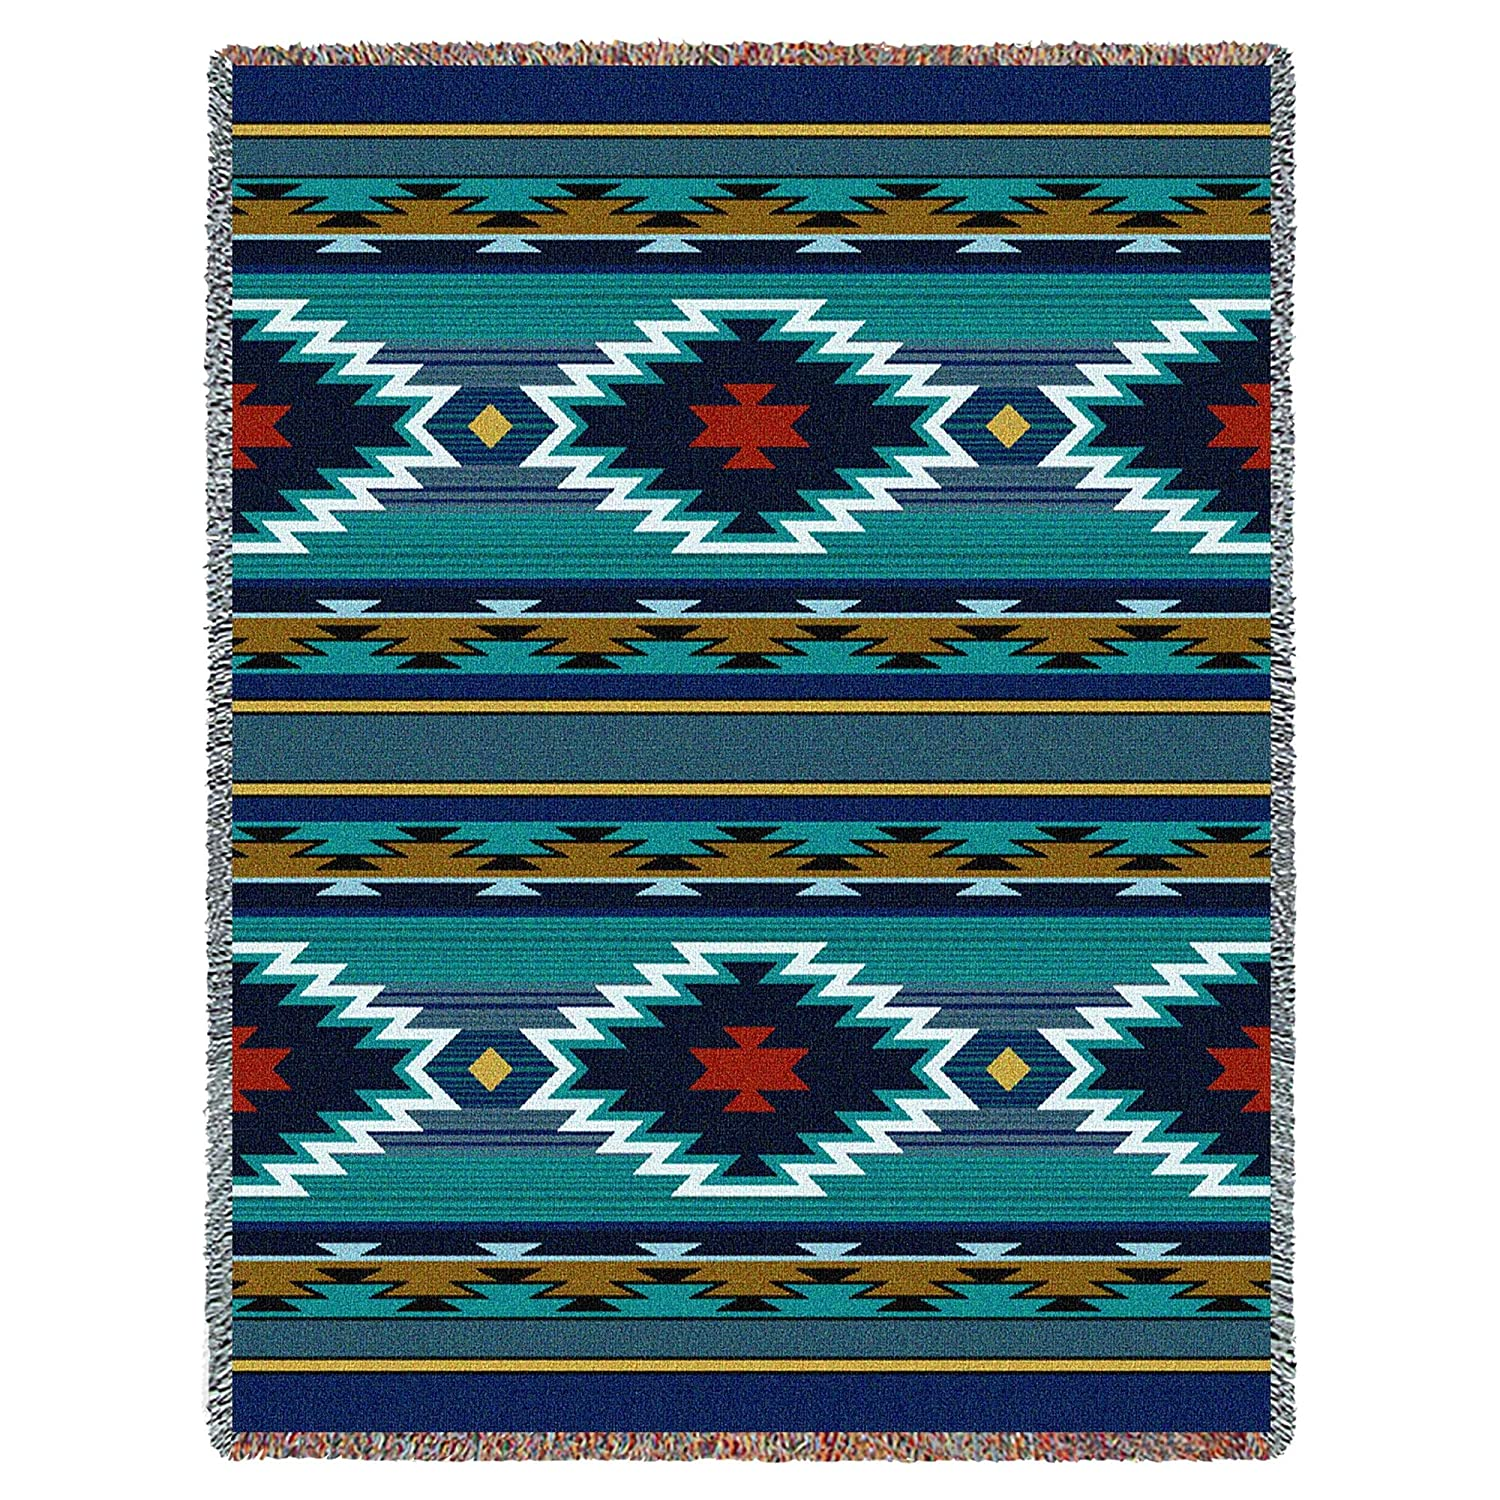 Southwest Geometric Cornflower Tapestry Throw Blanket USA Made